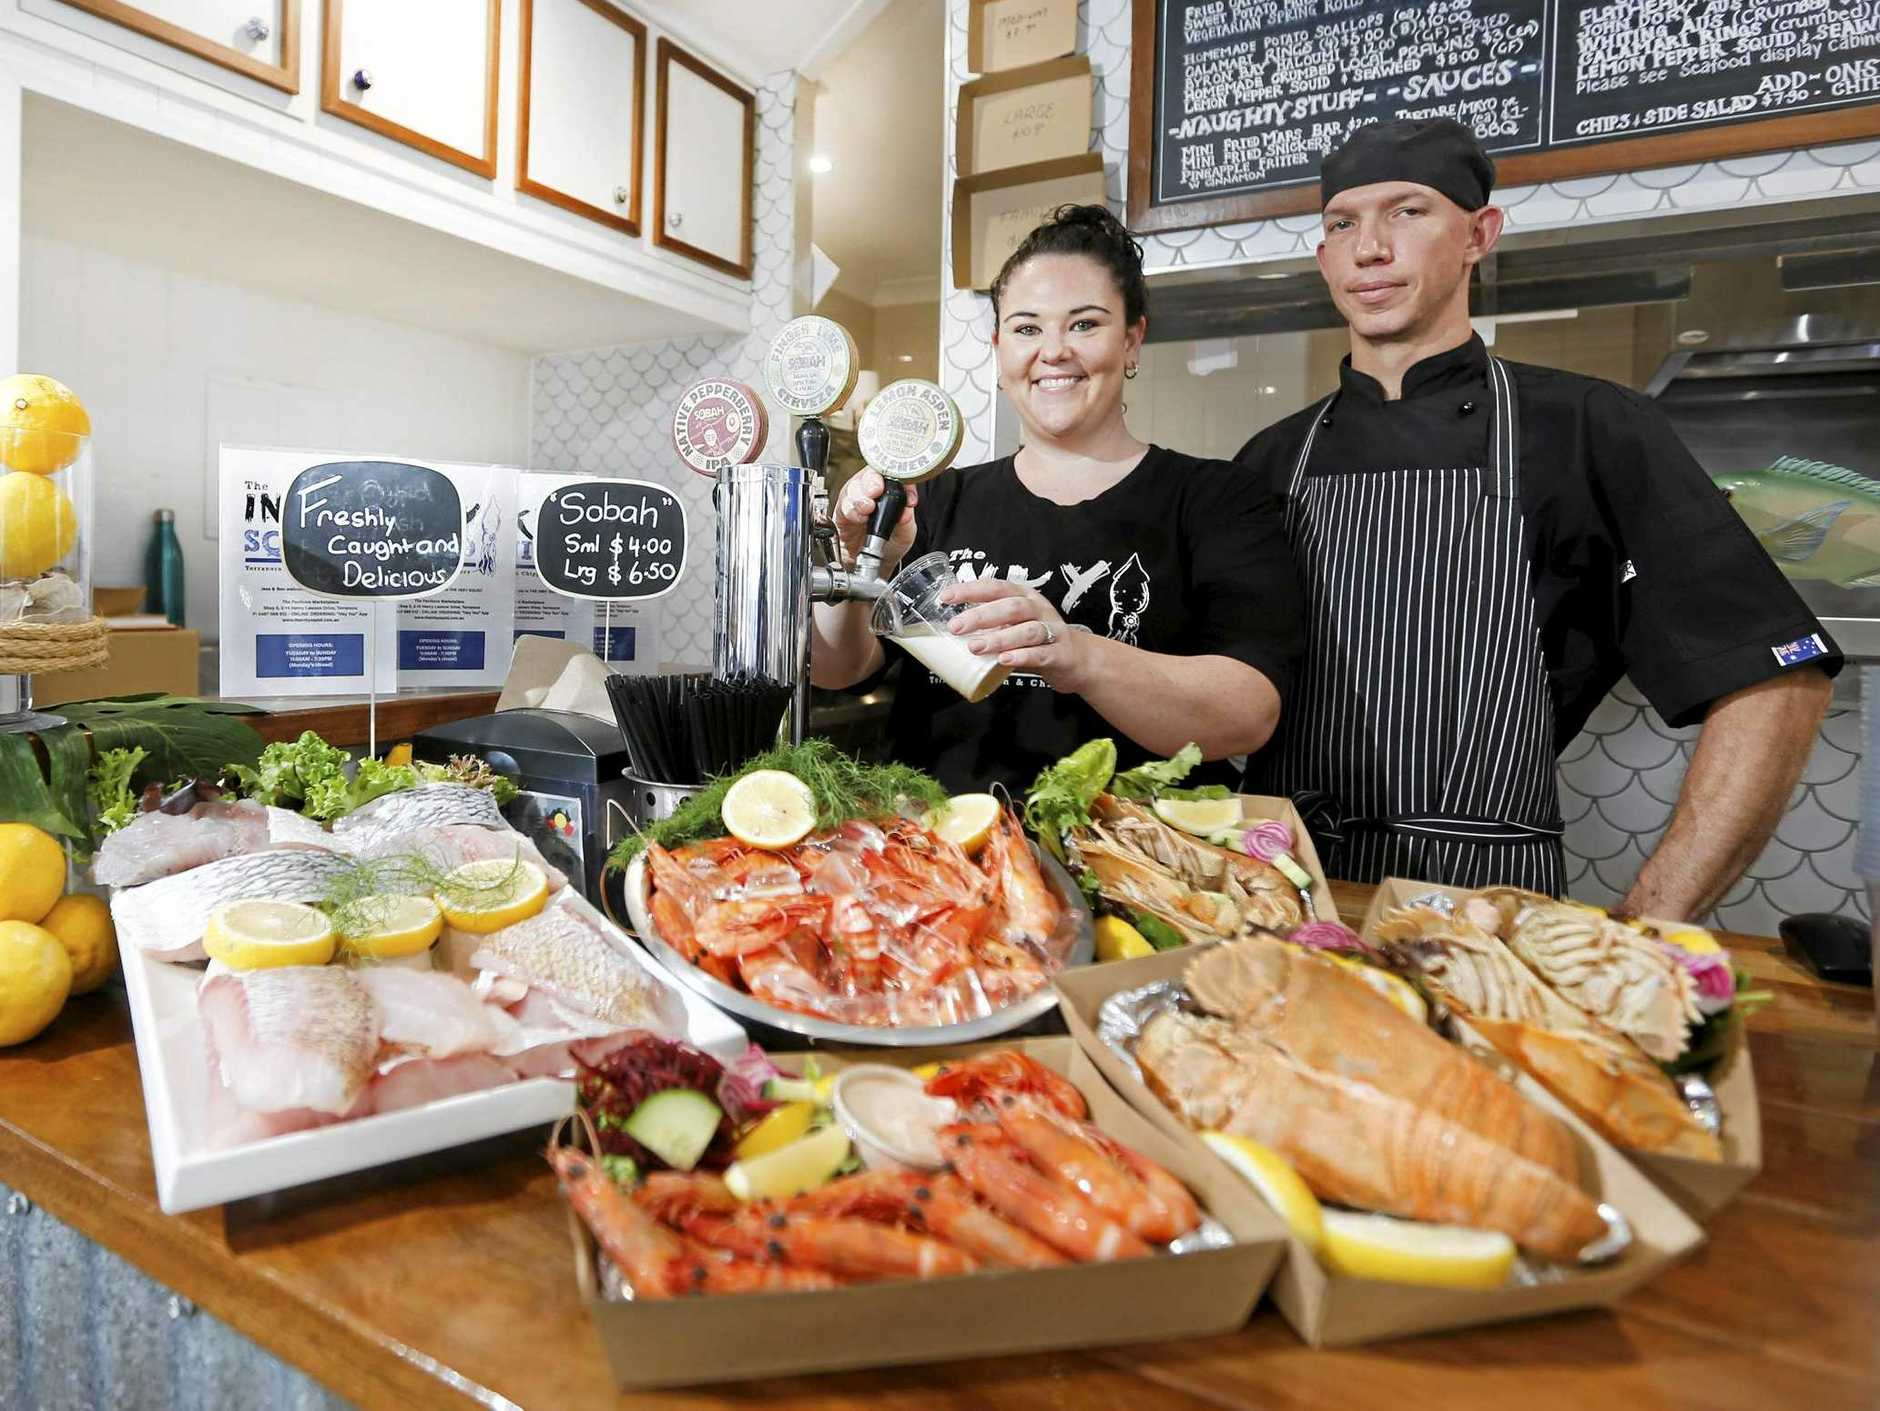 SEVENTH HEAVEN: Inky Squid at Terranora, owned by Jessica Price and Ben Jones, has been named the seventh-best fish and chip shop in NSW.